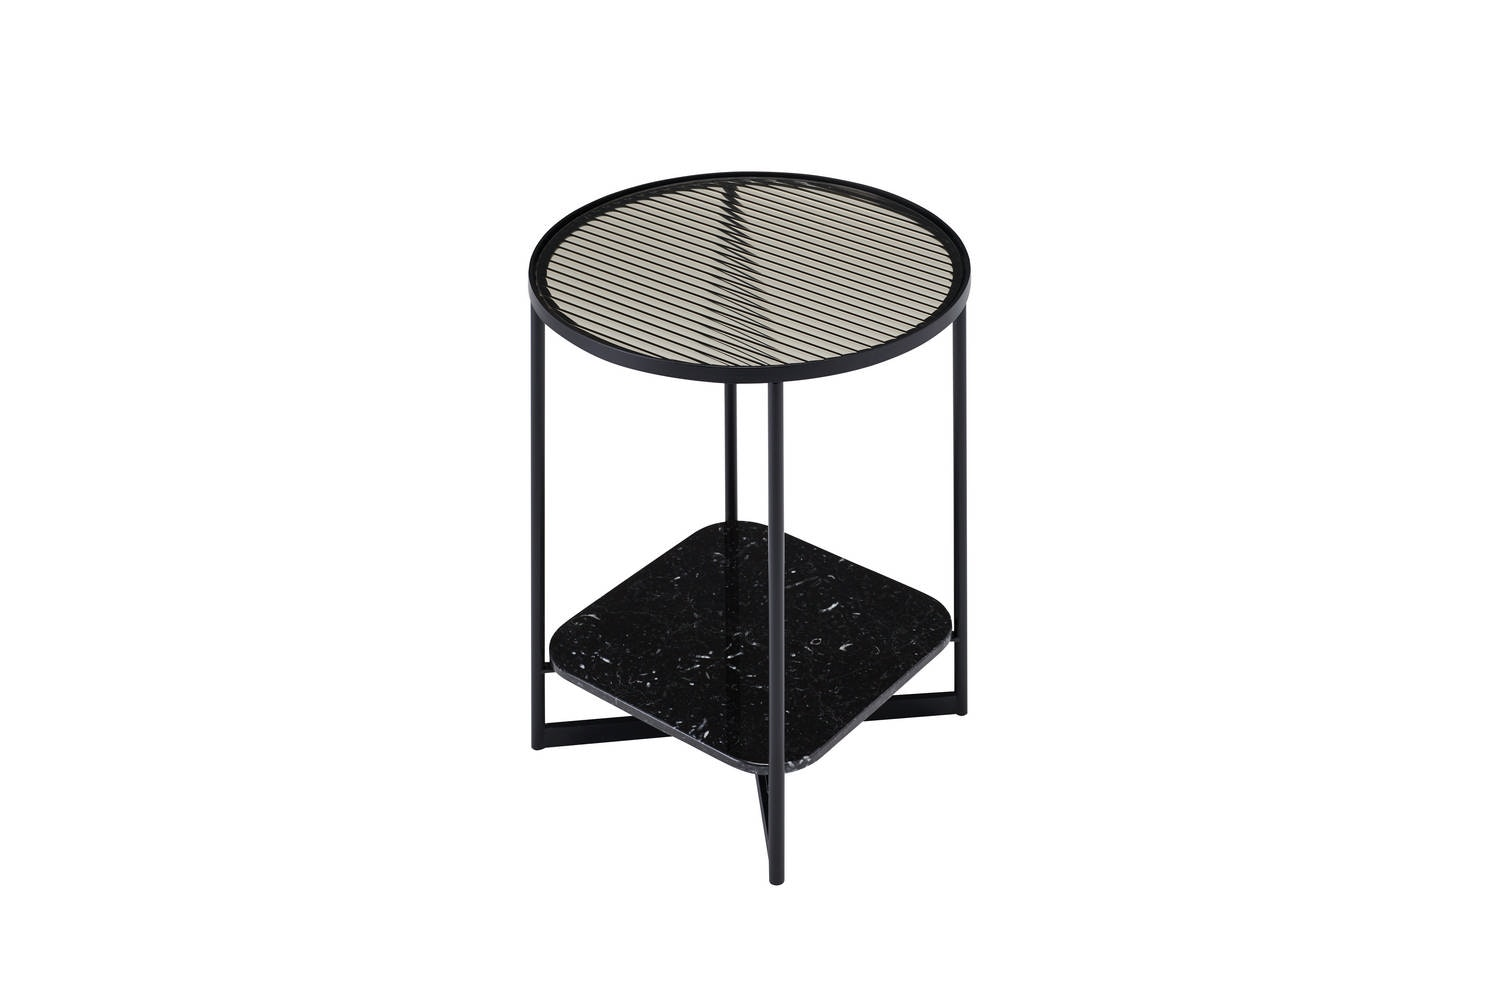 Mohana Table Small by Tim Rundle for SP01